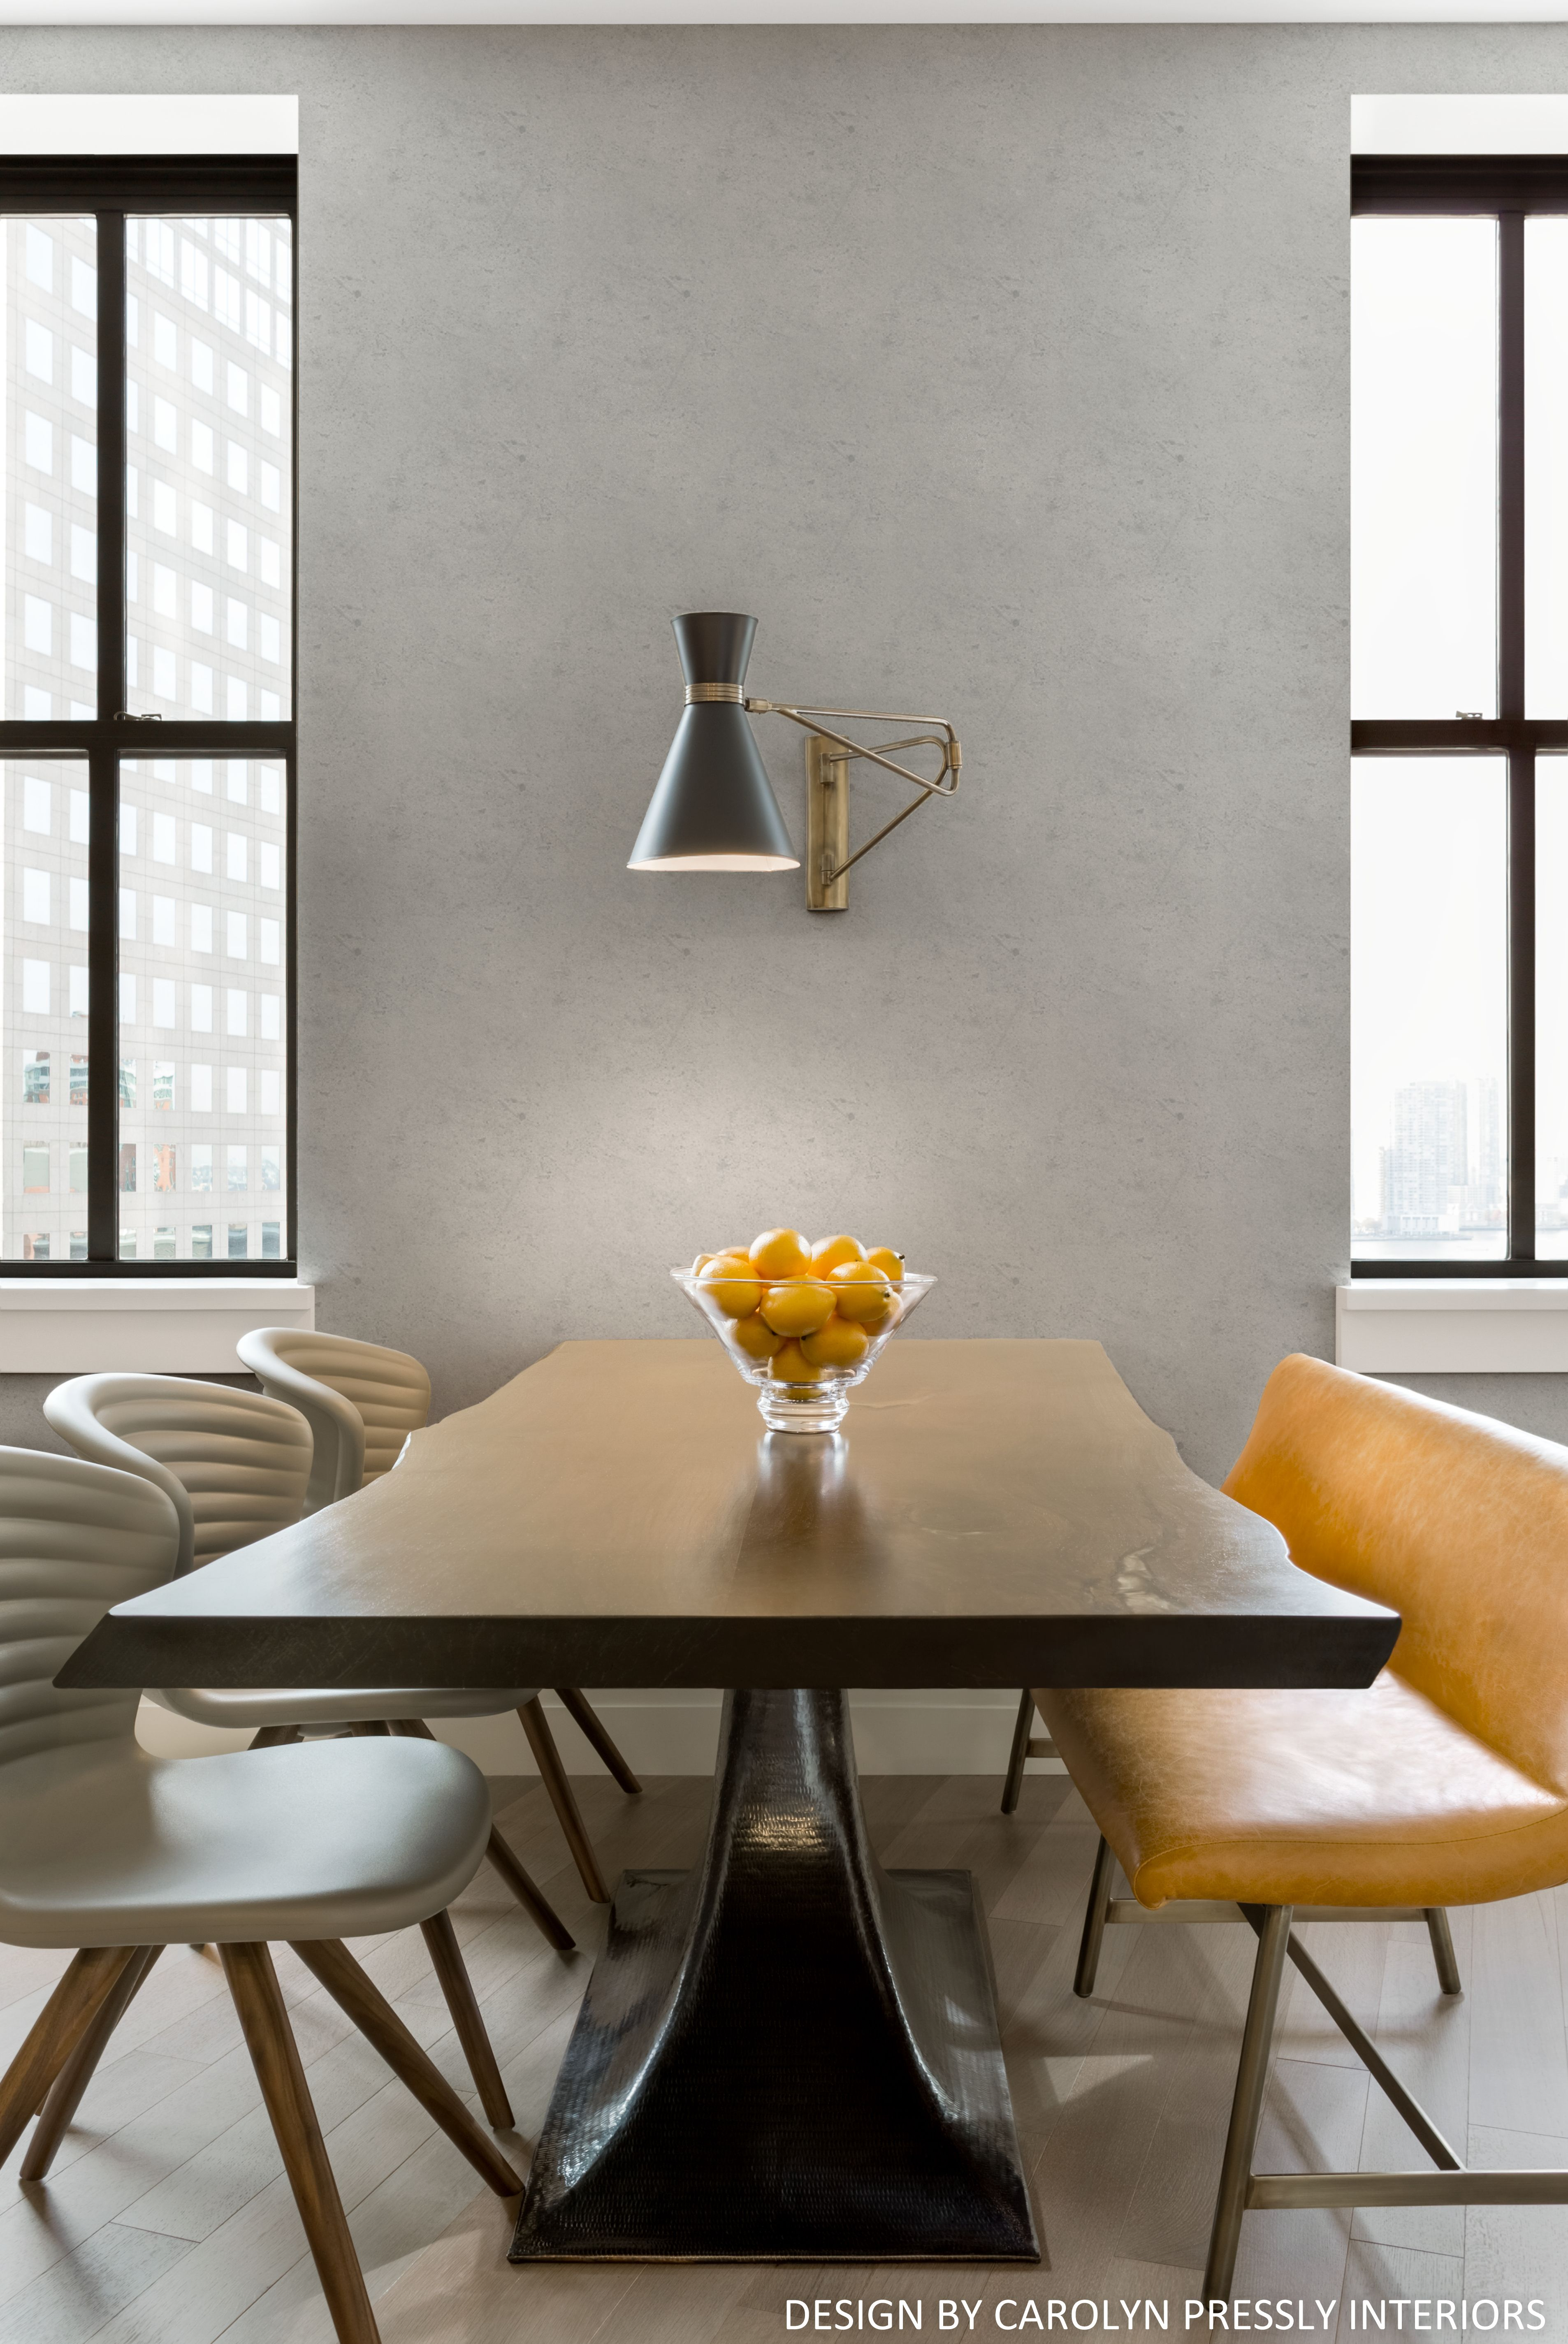 Design By Carolyn Pressly Interiors Dining In New York City